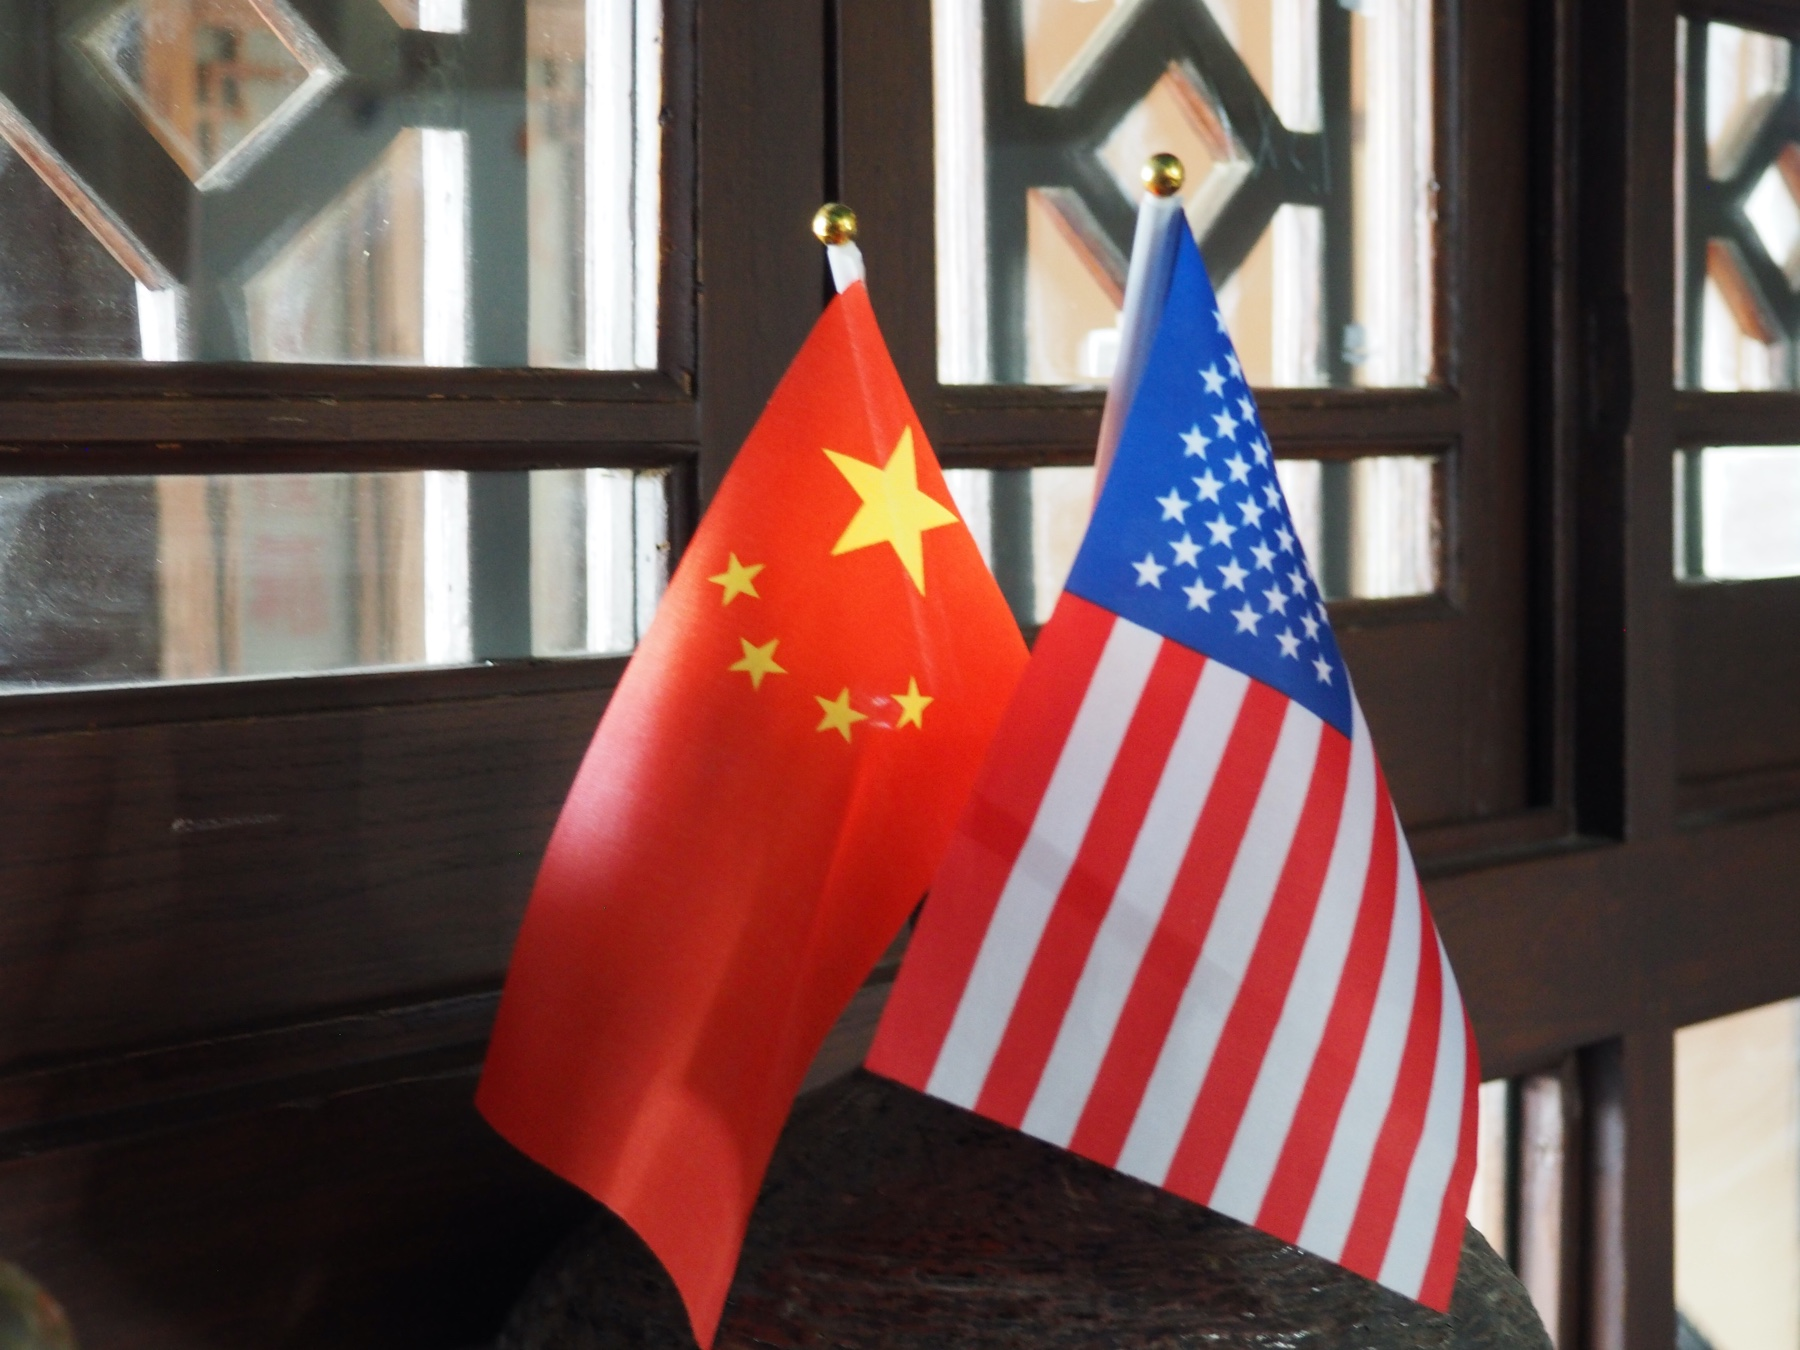 Decoupling Between The U.S. And China May Be As Disruptive As COVID-19